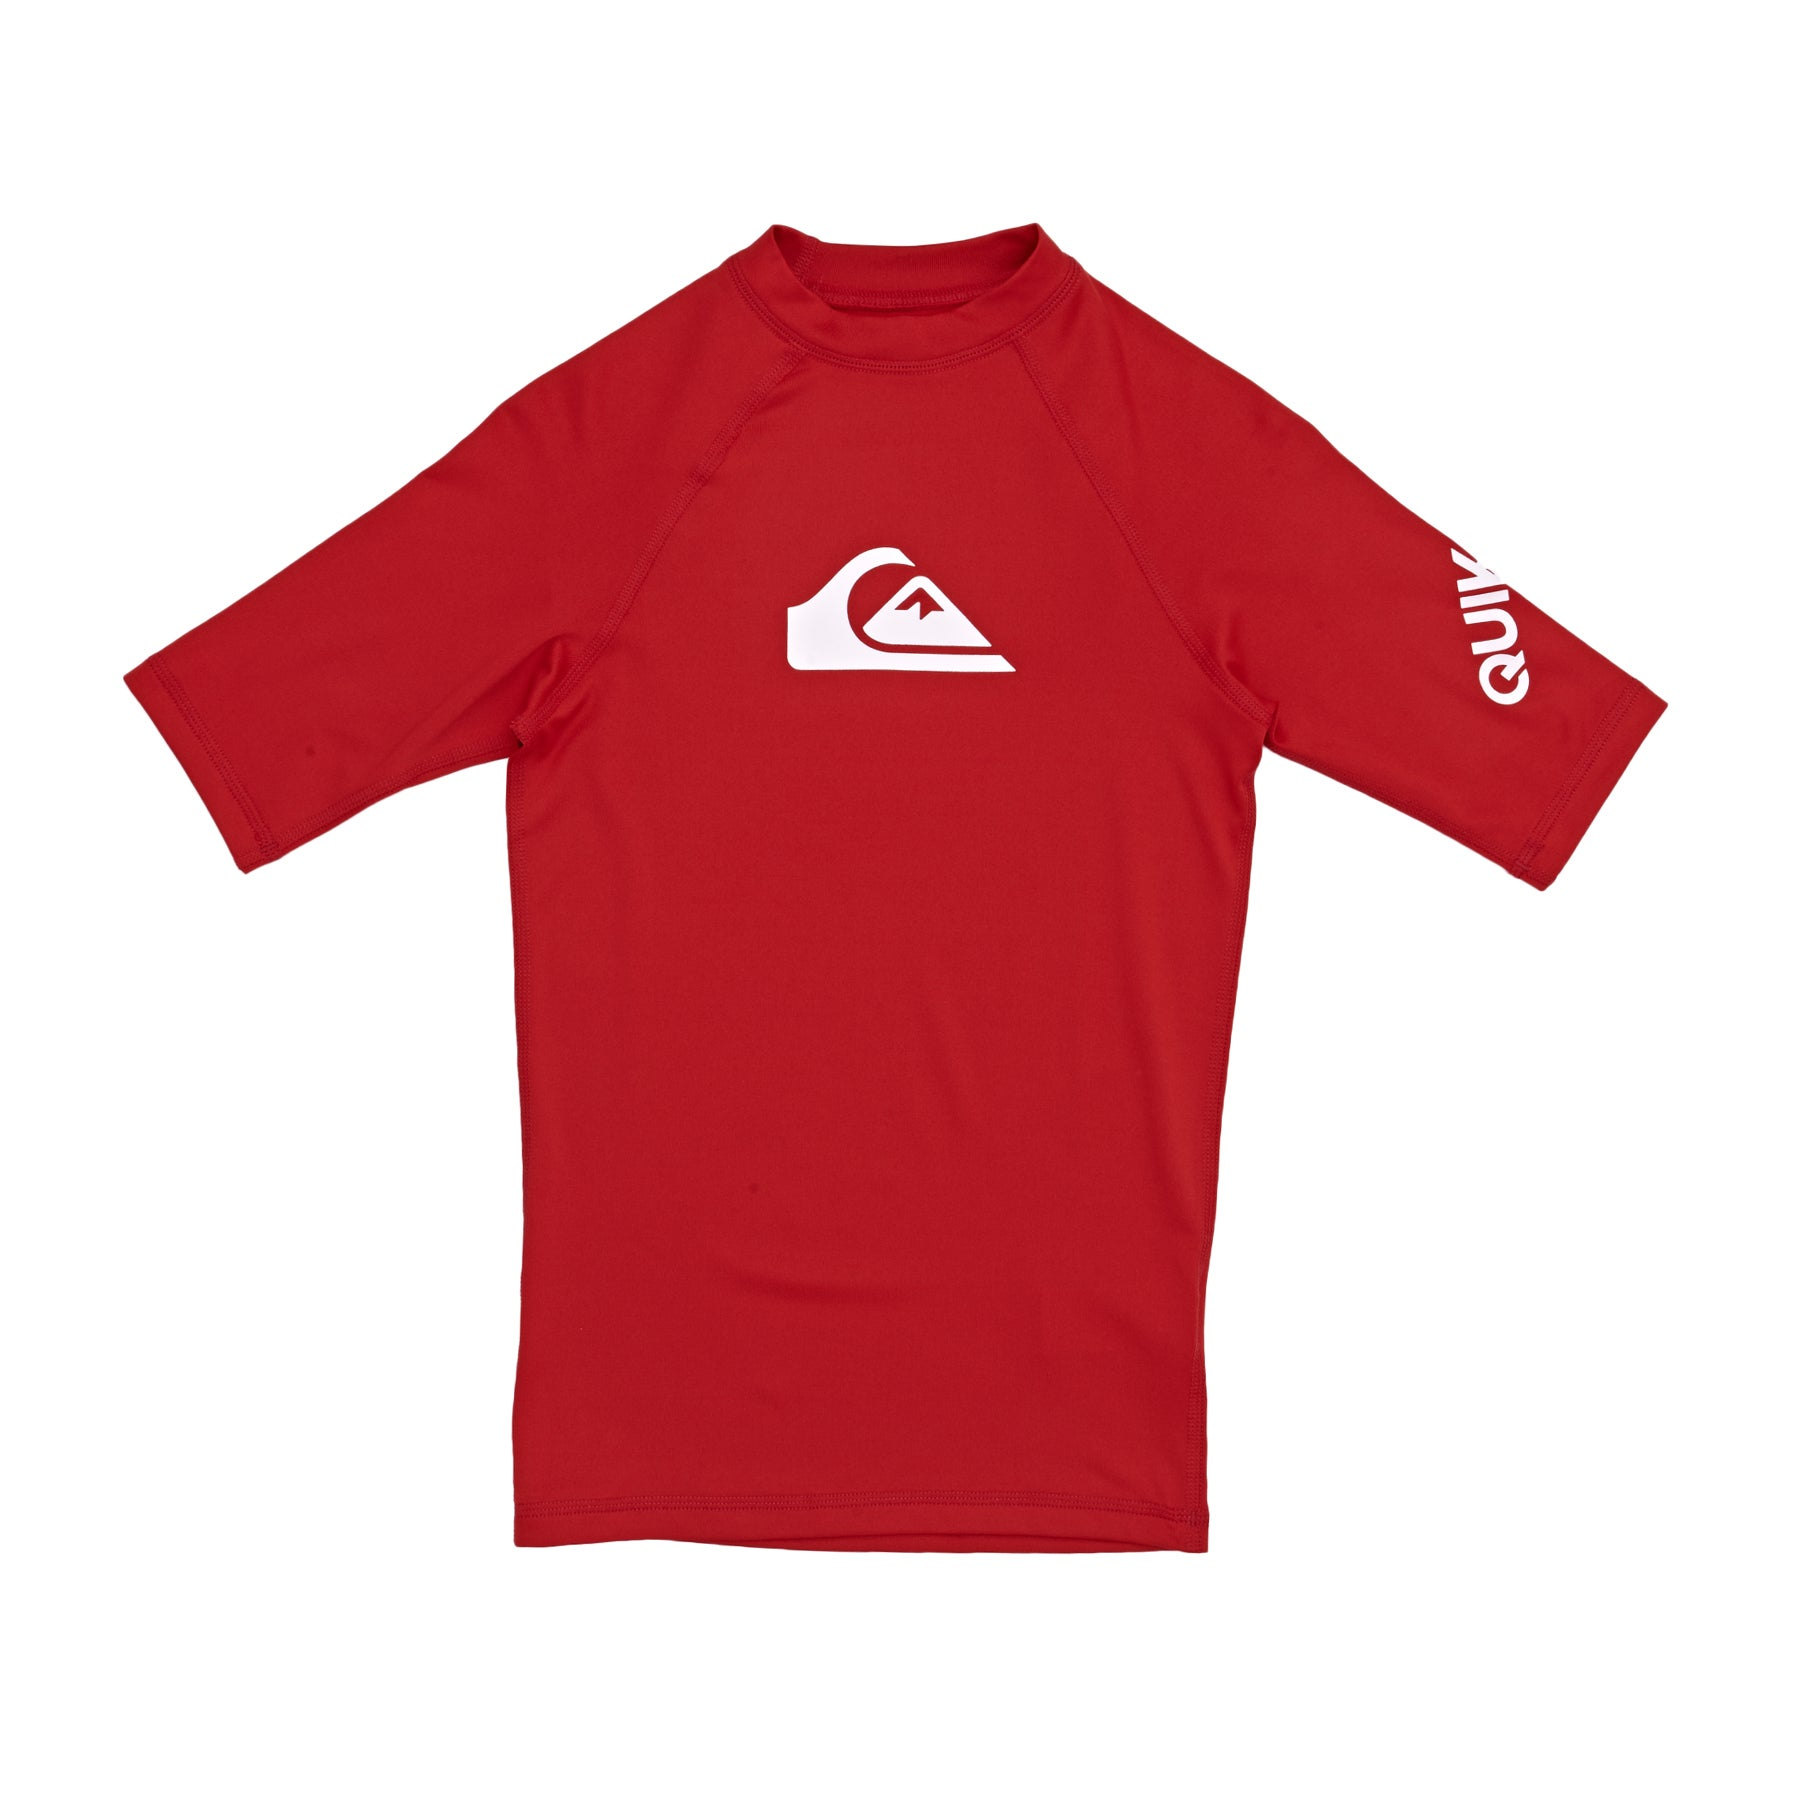 Quiksilver All Time Short Sleeve Boys Rash Vest - Quik Red